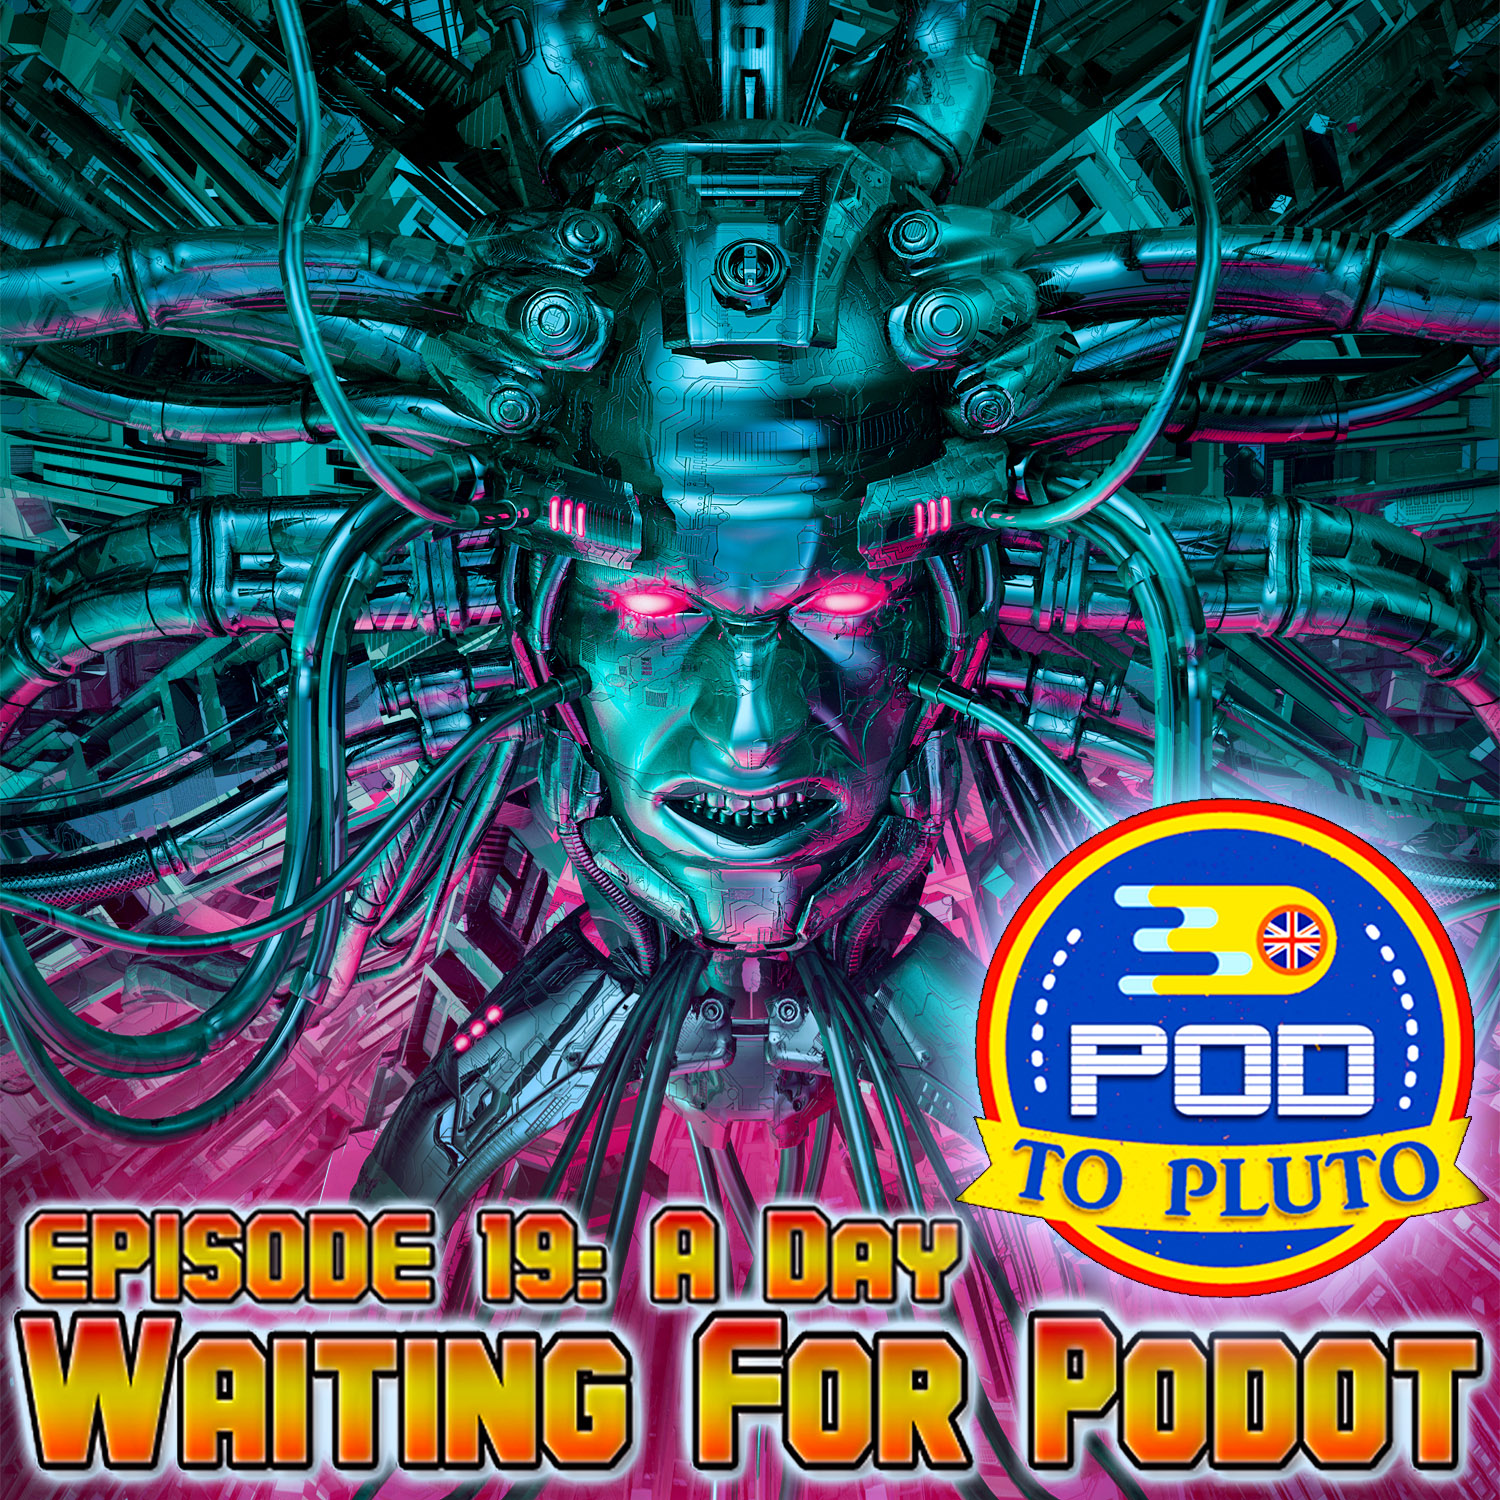 Pod To Pluto: EP19 – A Day Waiting For Podot